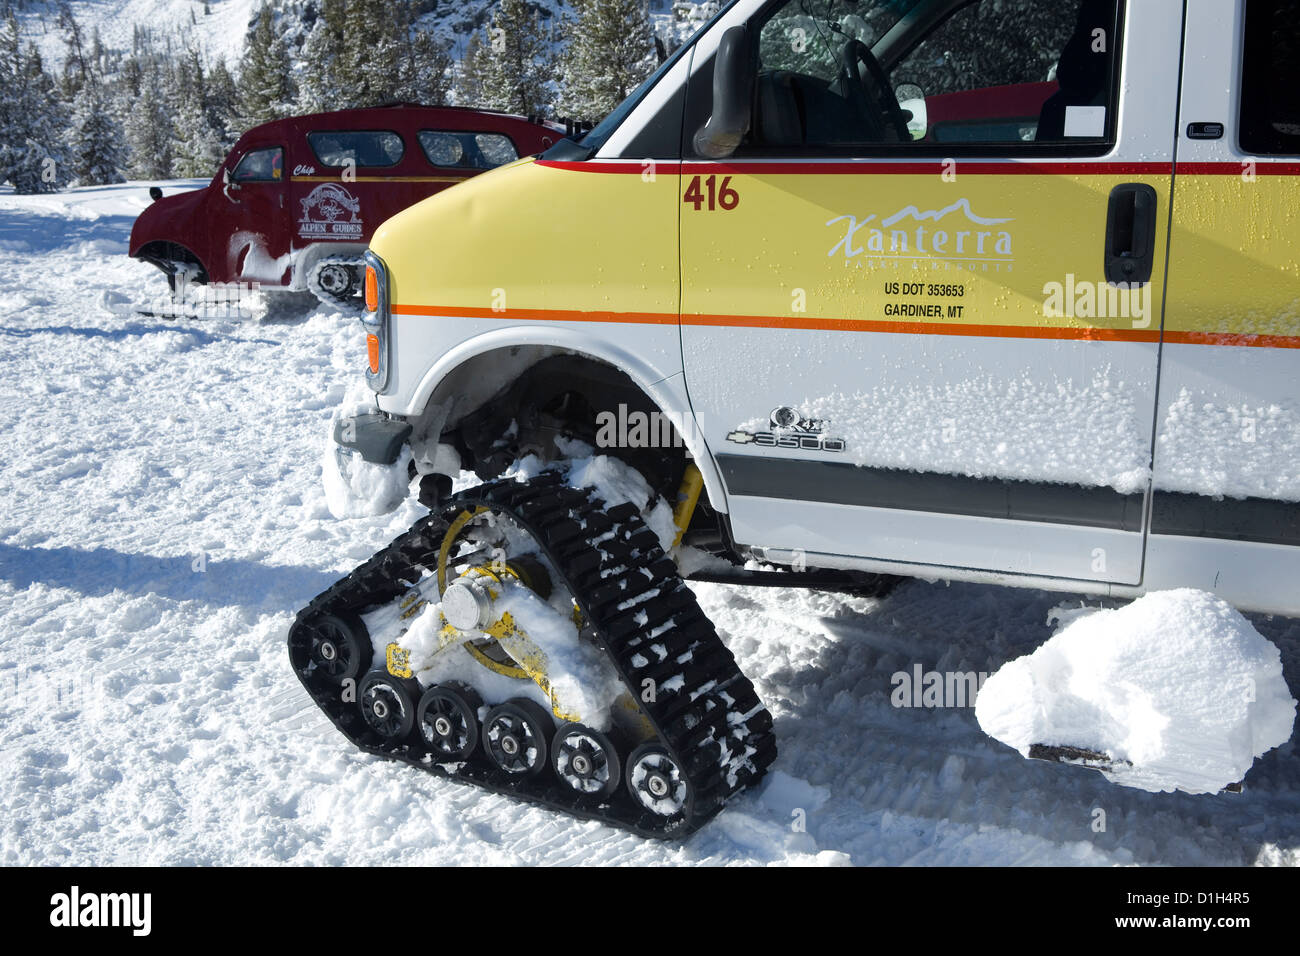 Converted van for carrying winter visitors over the snow covered road in Yellowstone National Park at Norris Geyser - Stock Image